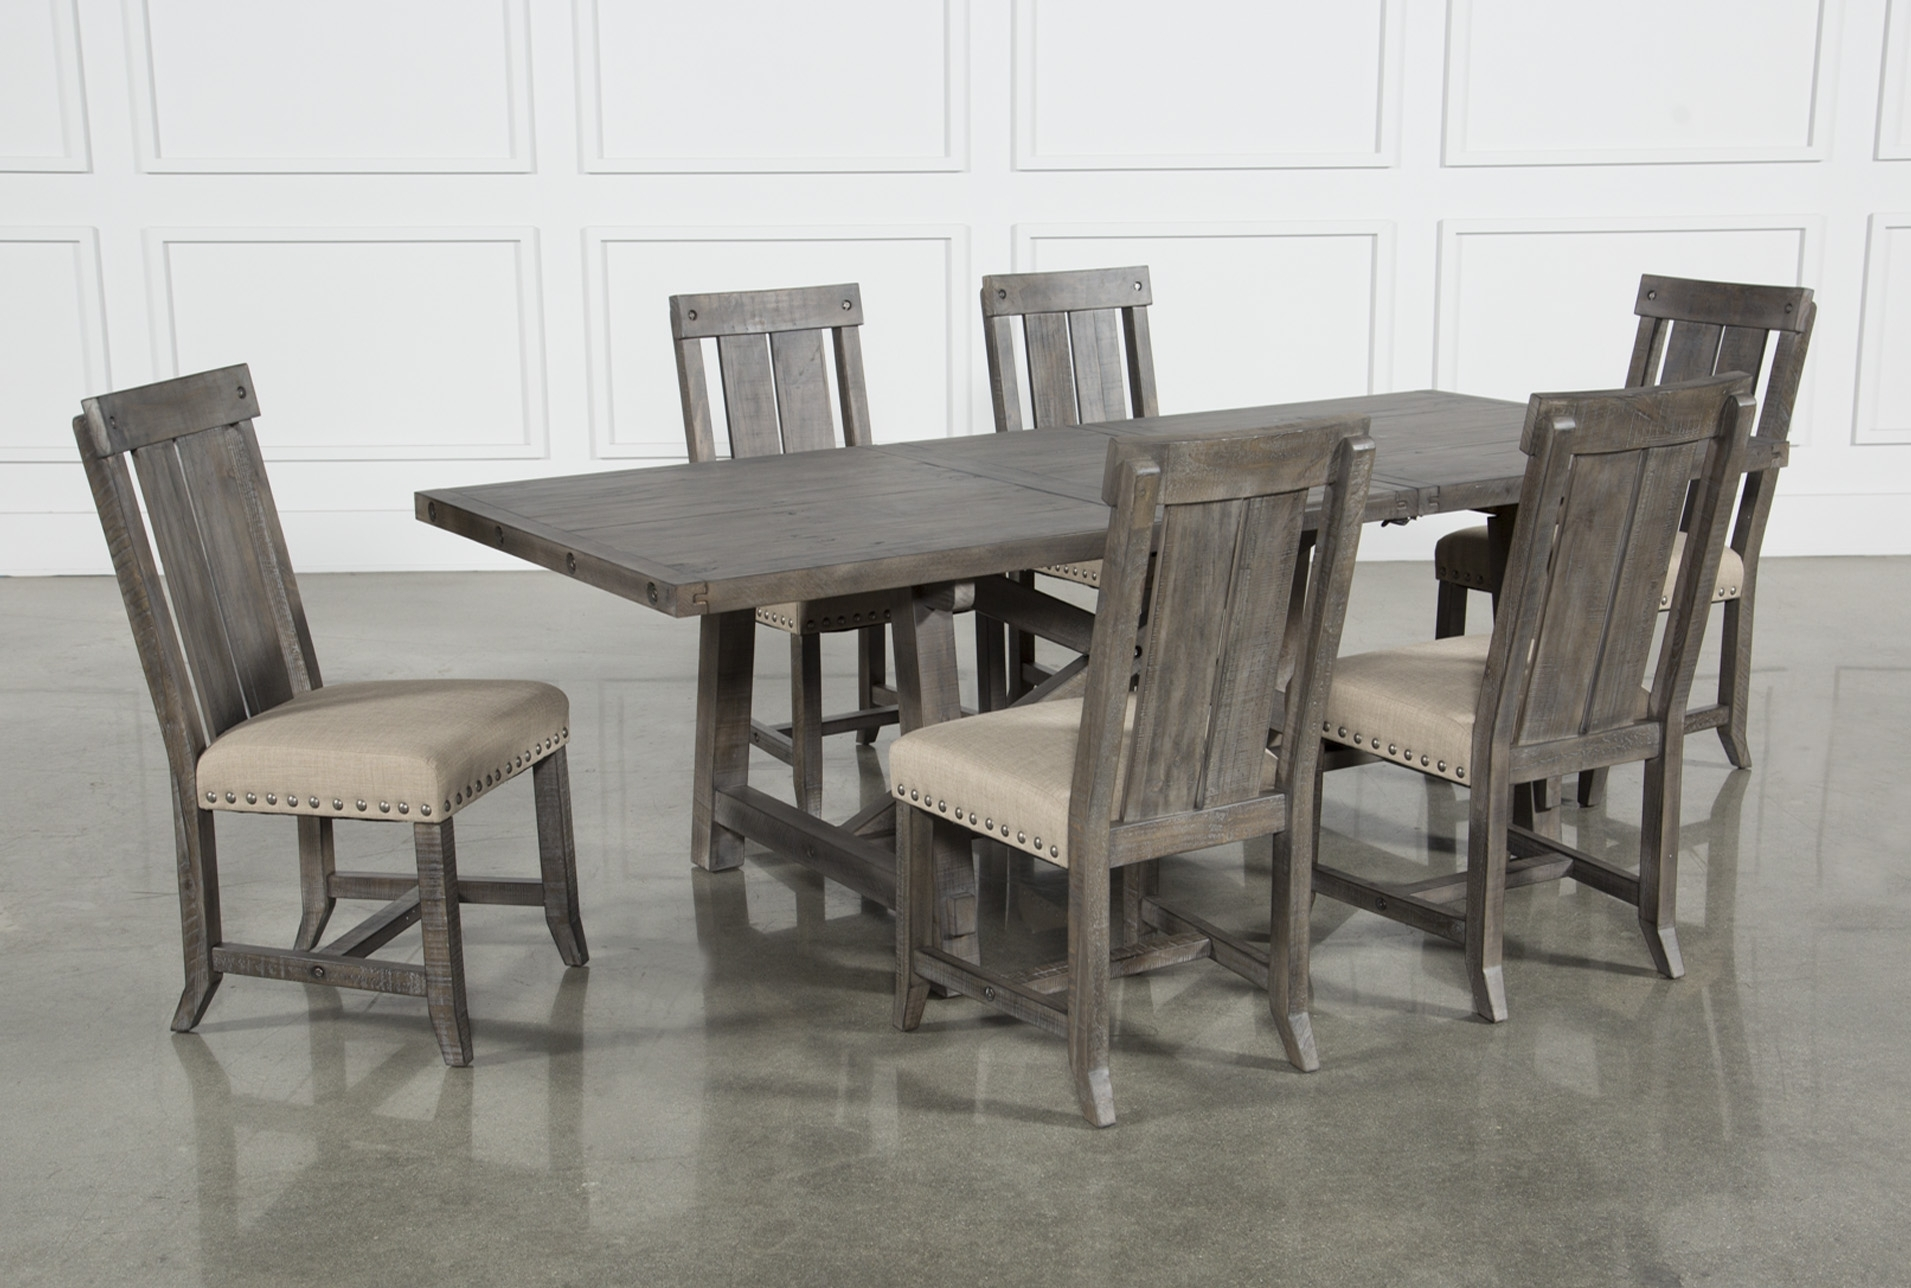 Jaxon Grey 7 Piece Rectangle Extension Dining Set W/wood Chairs Throughout Most Popular Jaxon Grey 7 Piece Rectangle Extension Dining Sets With Uph Chairs (Image 11 of 20)